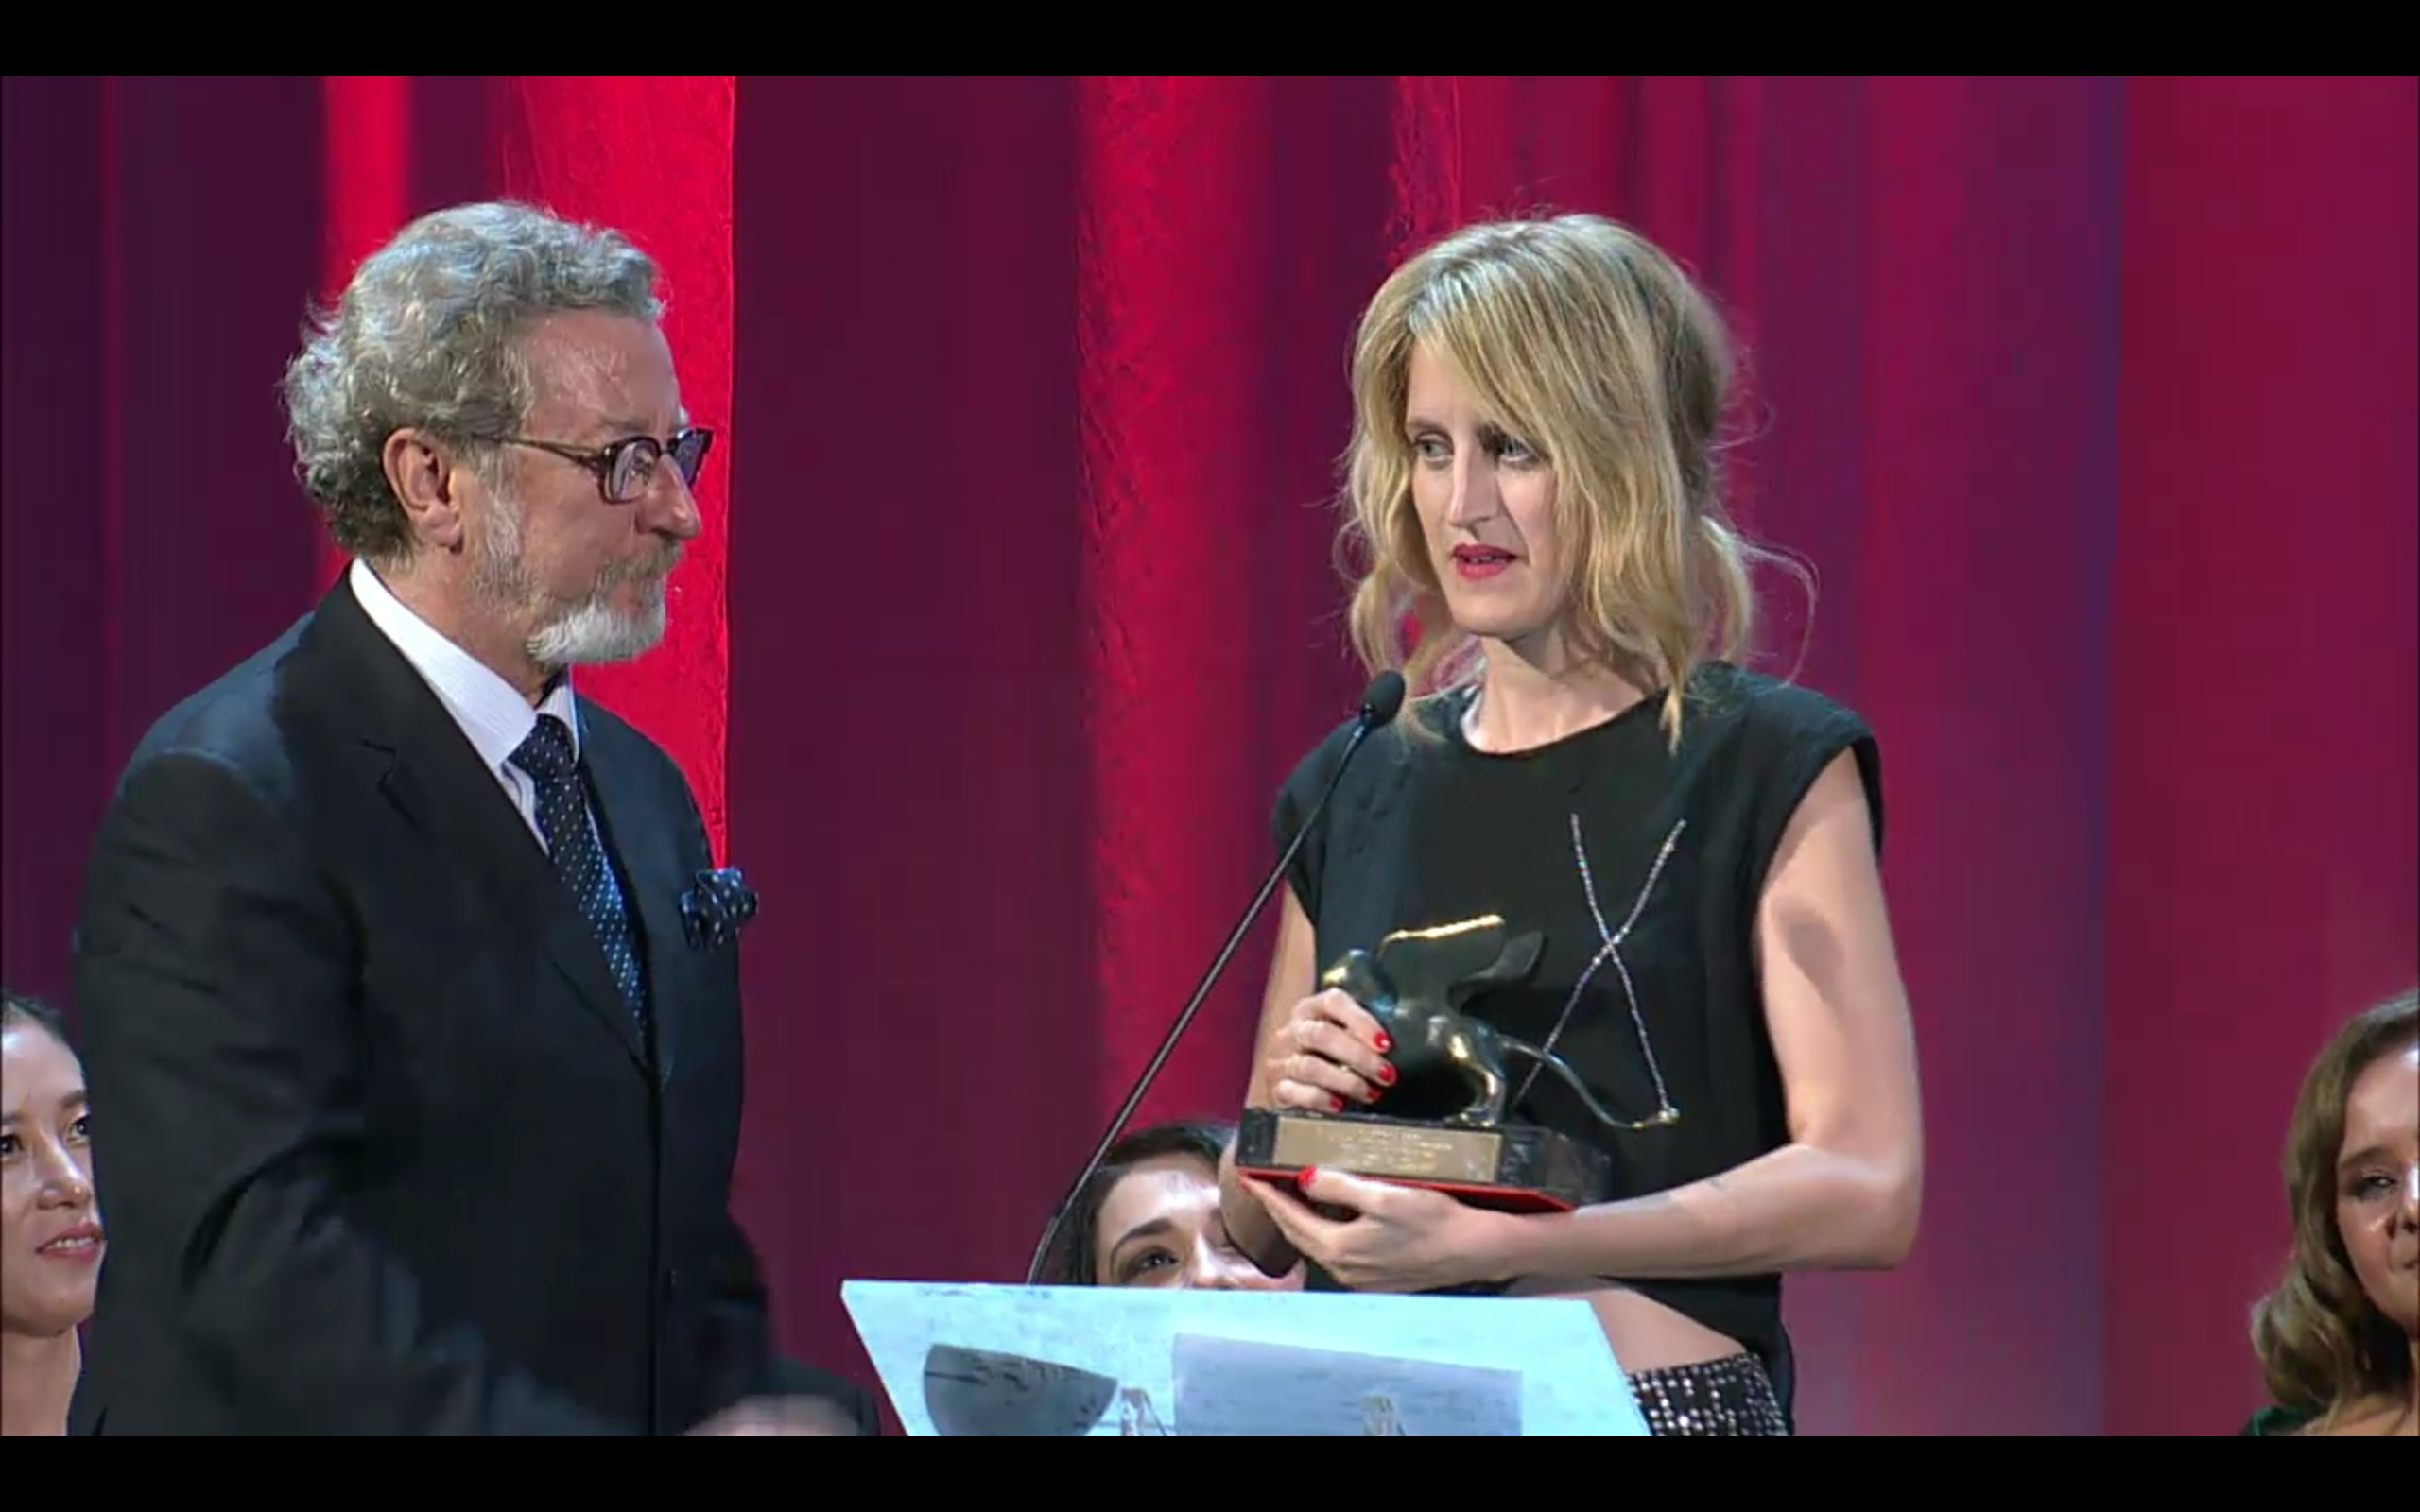 ORIZZONTI AWARD FOR BEST DIRECTOR to: FIEN TROCK for HOME